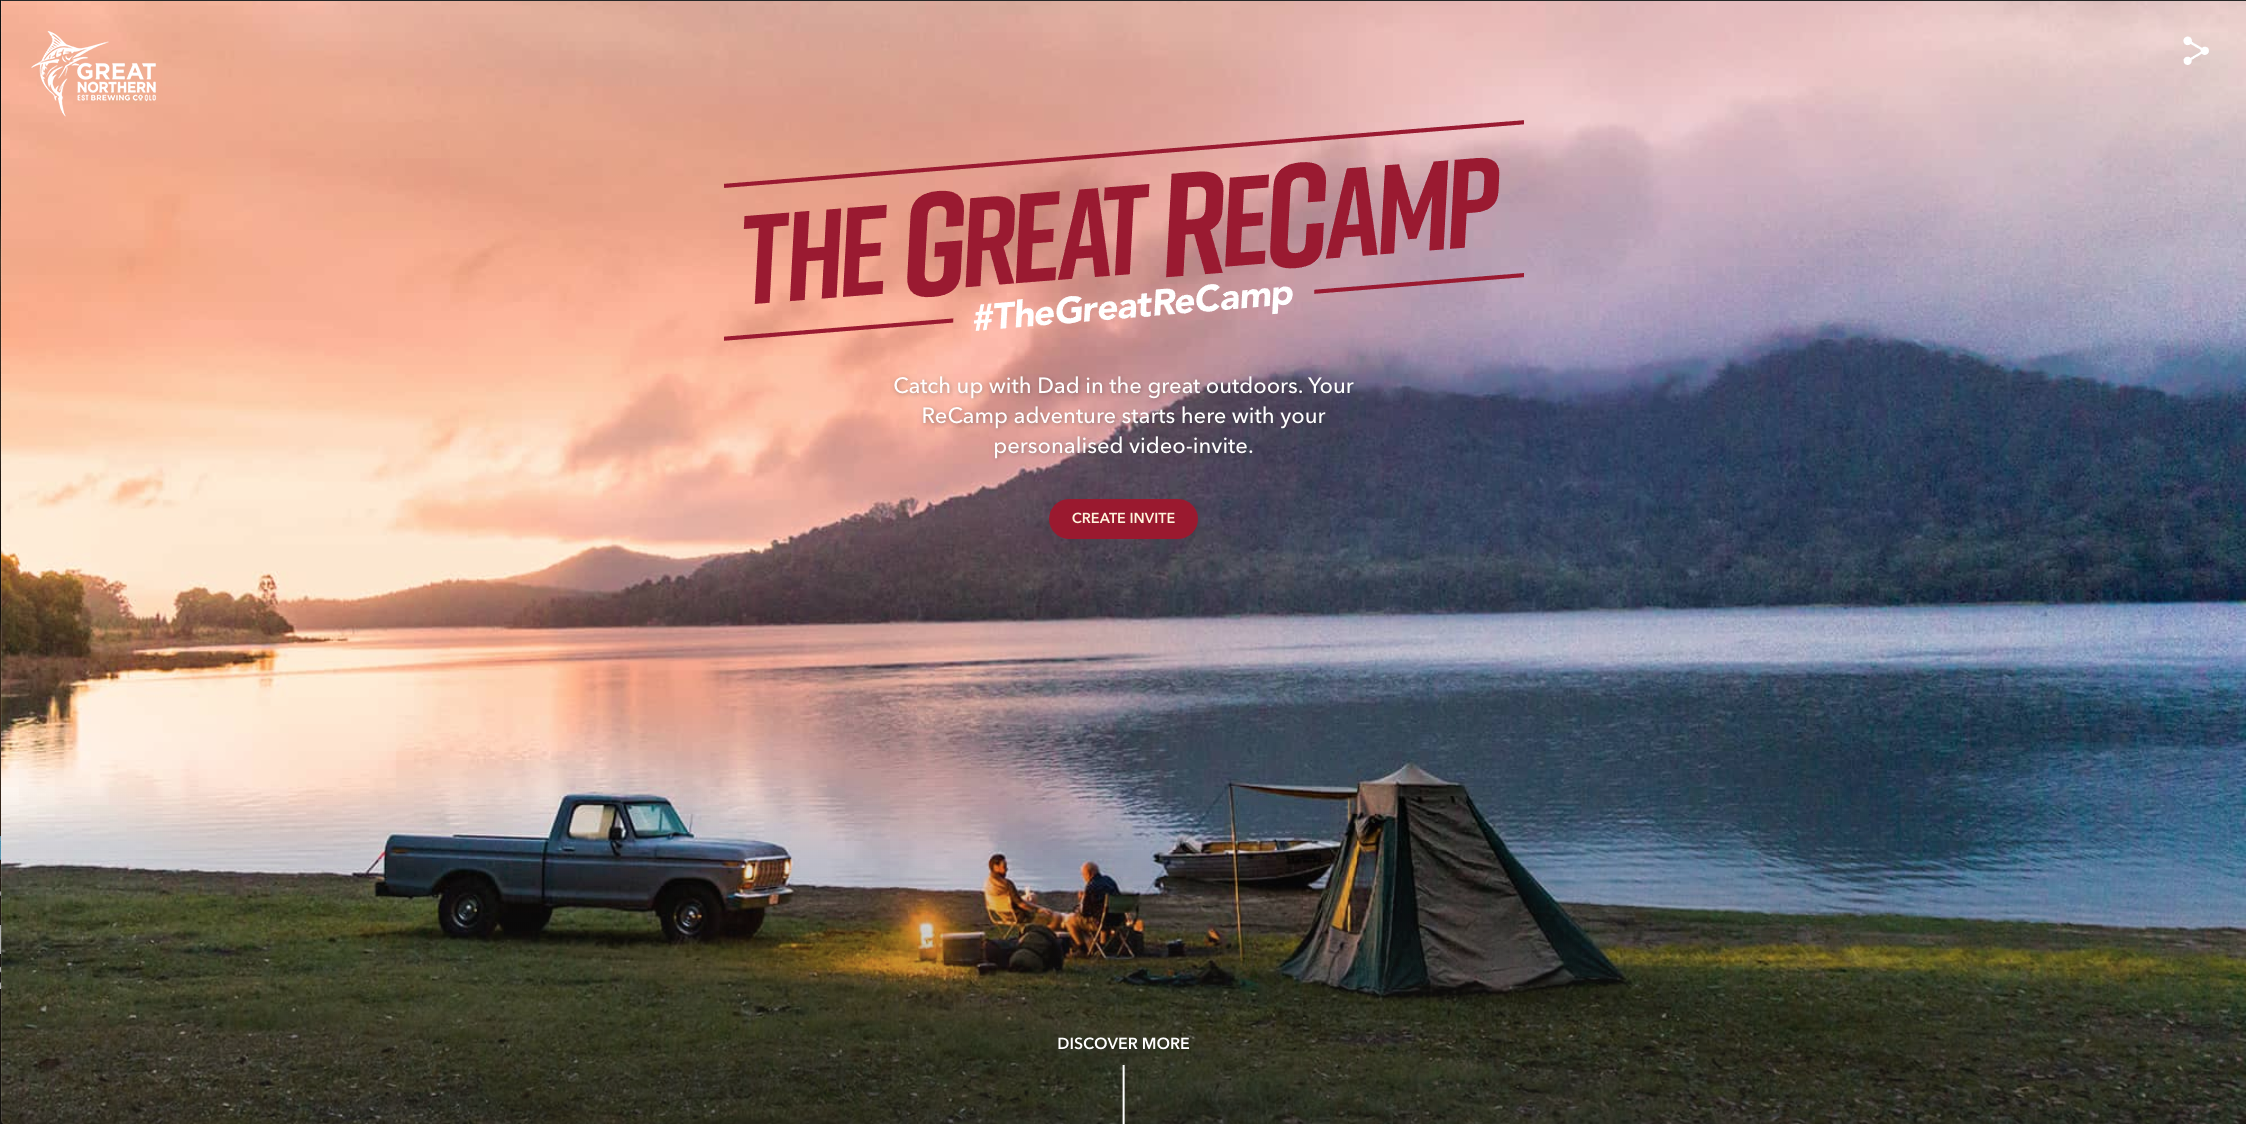 GREAT NORTHERN BREWING CO. LAUNCHES 'THE GREAT RECAMP' FOR FATHER'S DAY VIA TBWA GROUP SYDNEY